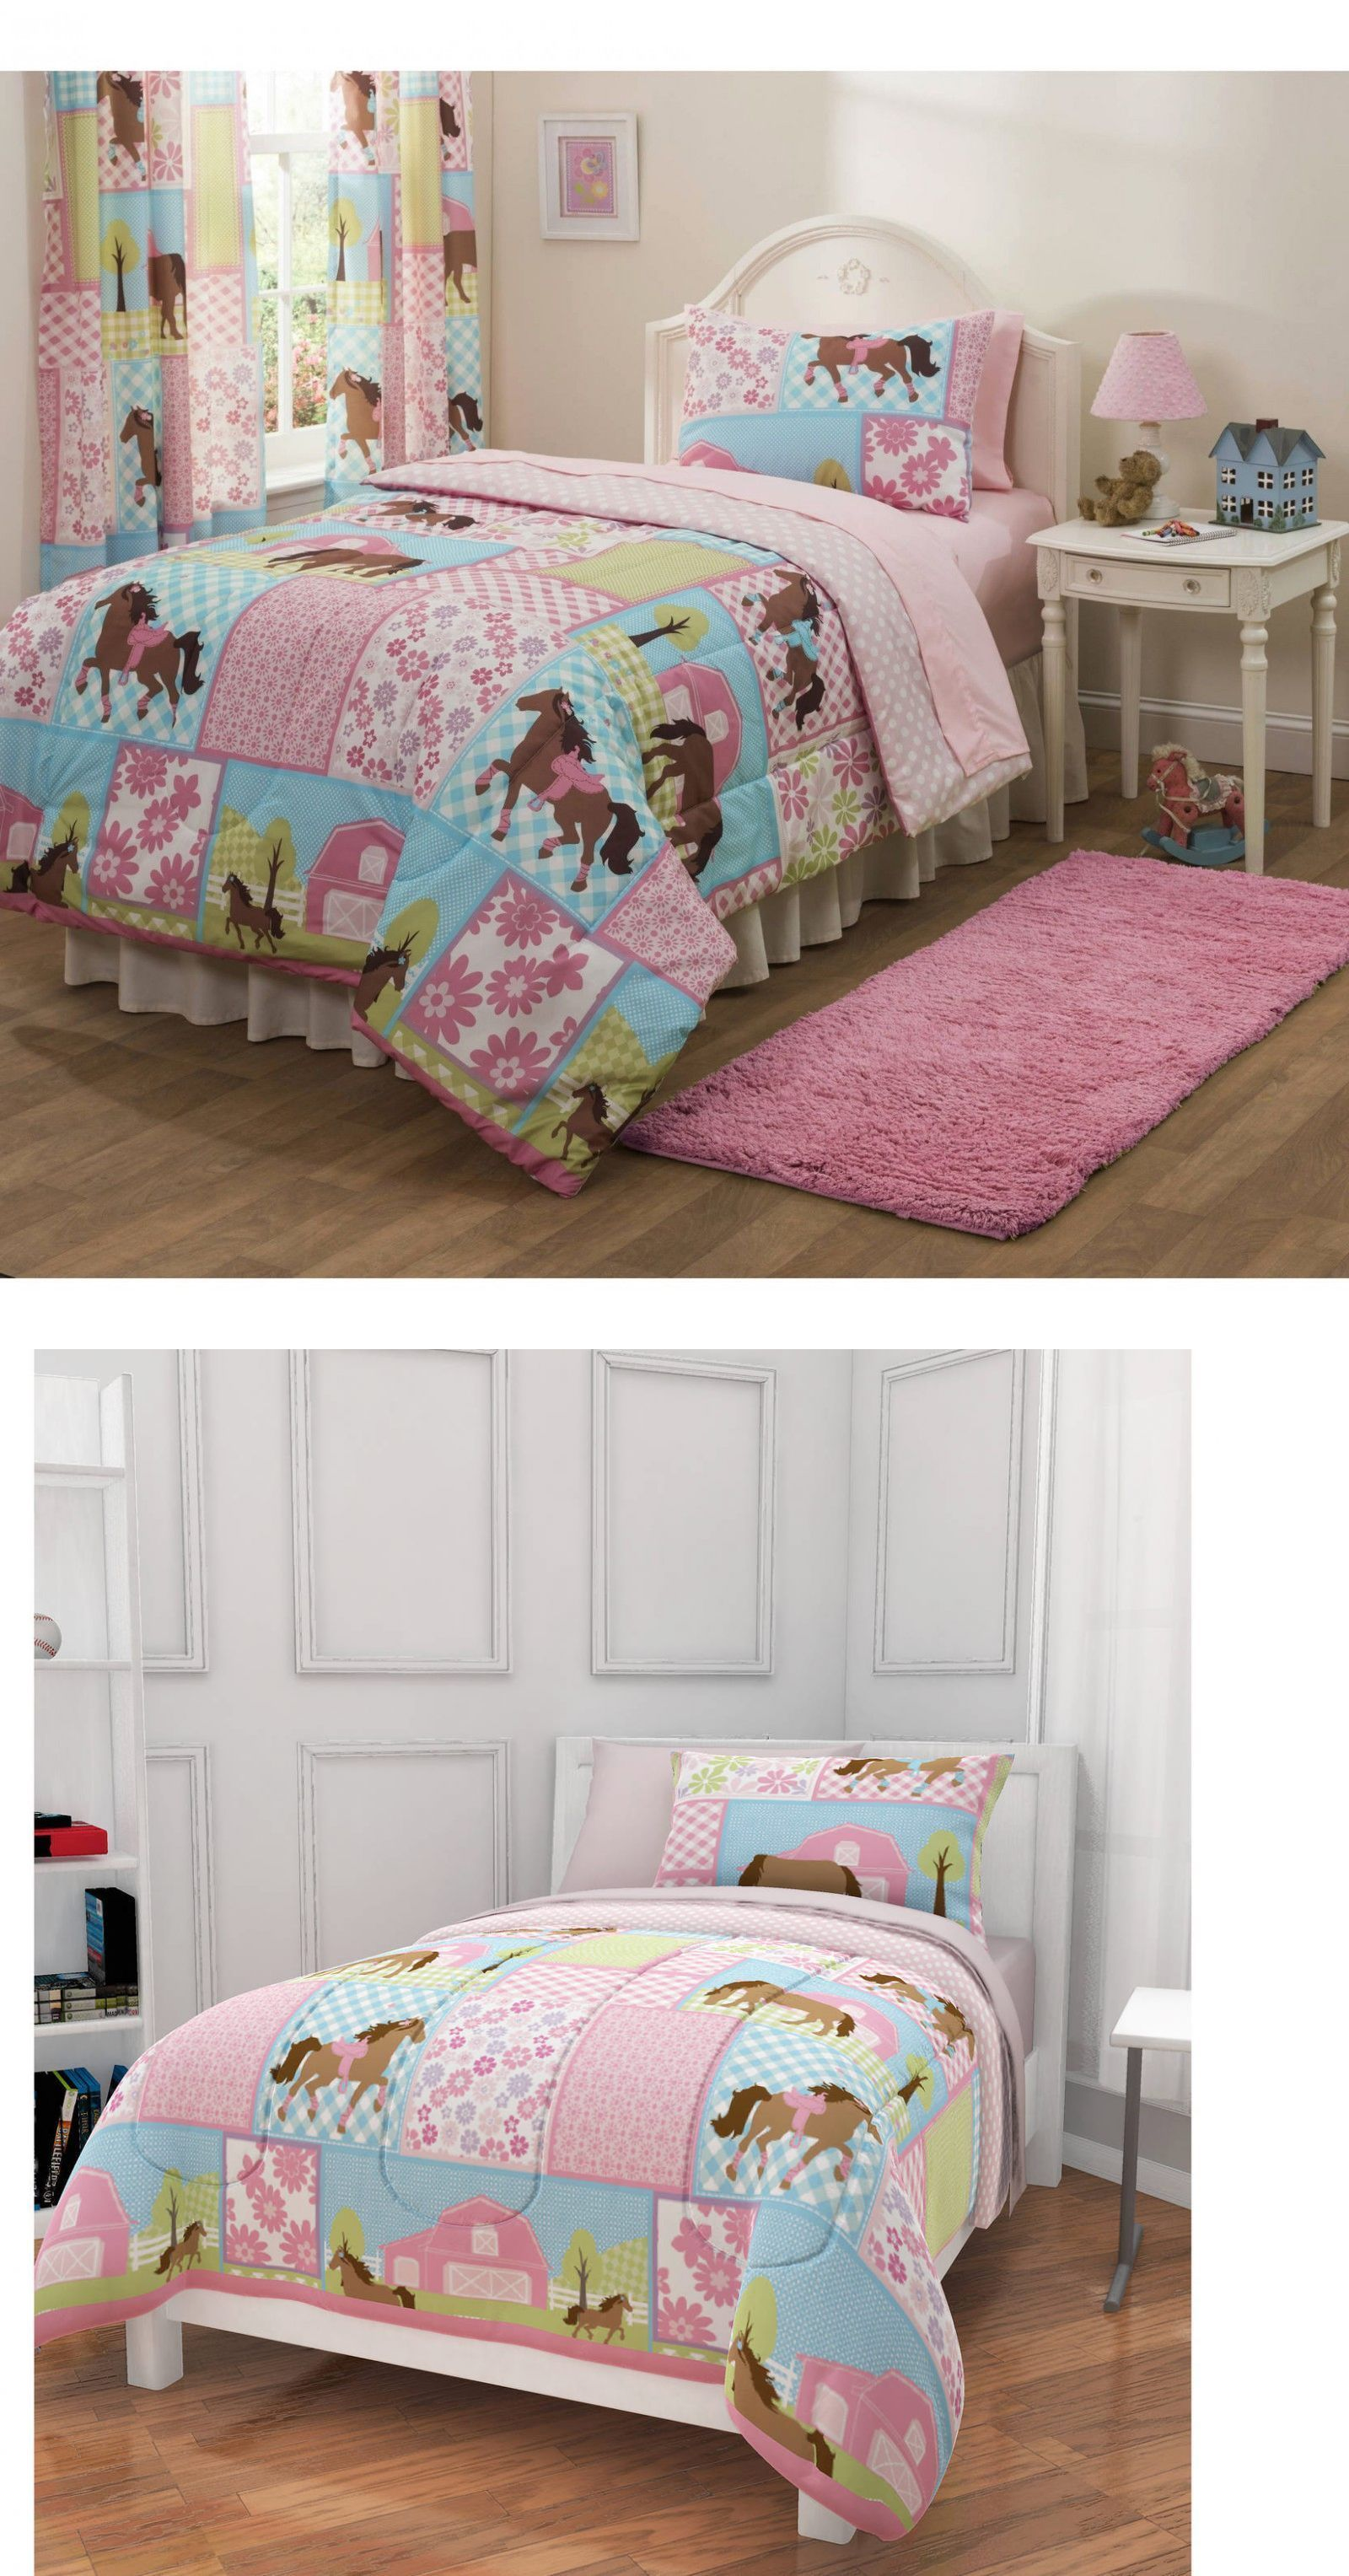 Bedding Sets 66731 Mainstays Kids